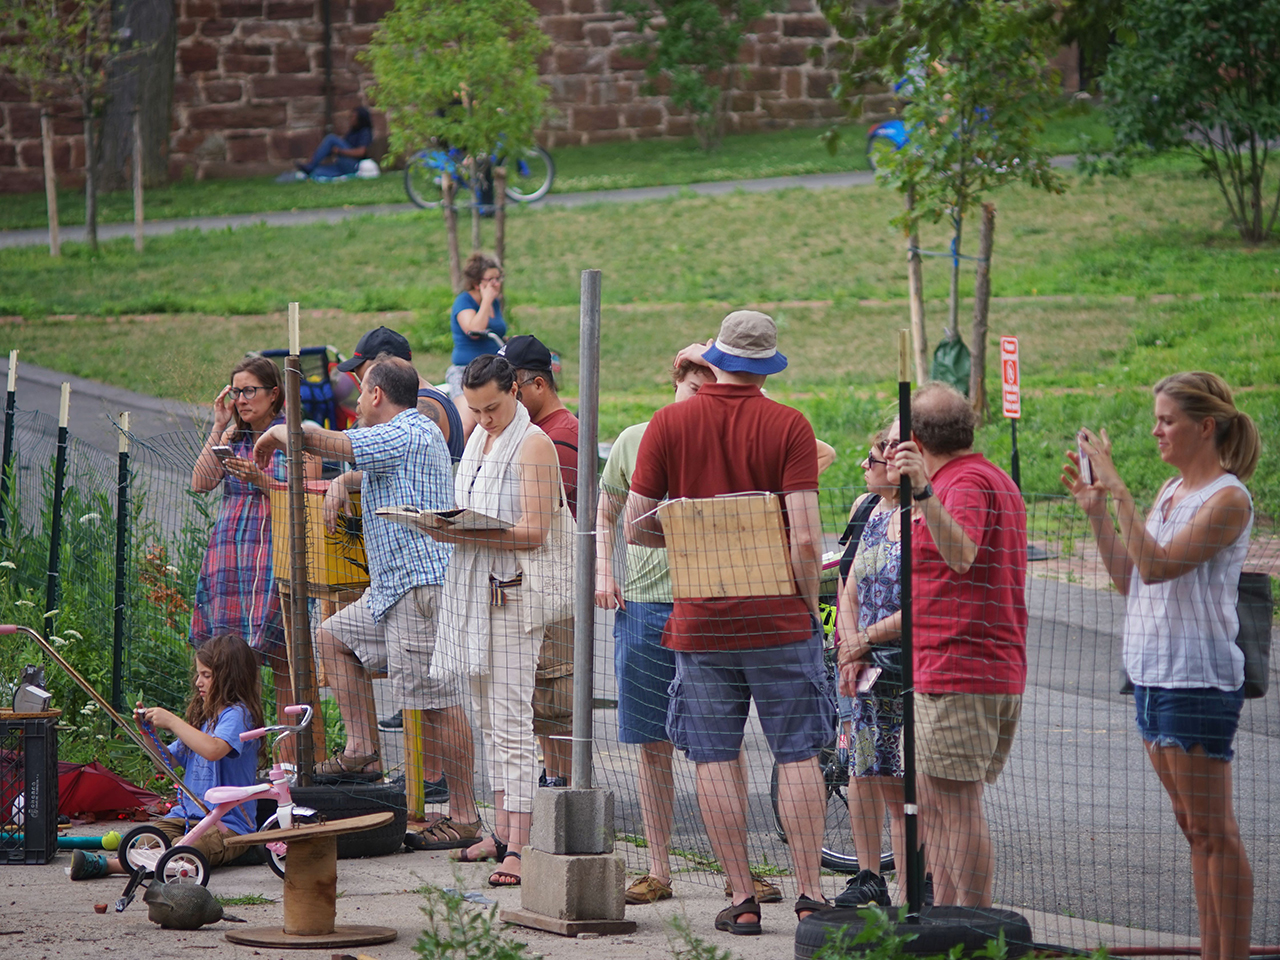 Parents restricted behind a fence at Play:ground on Governors Island